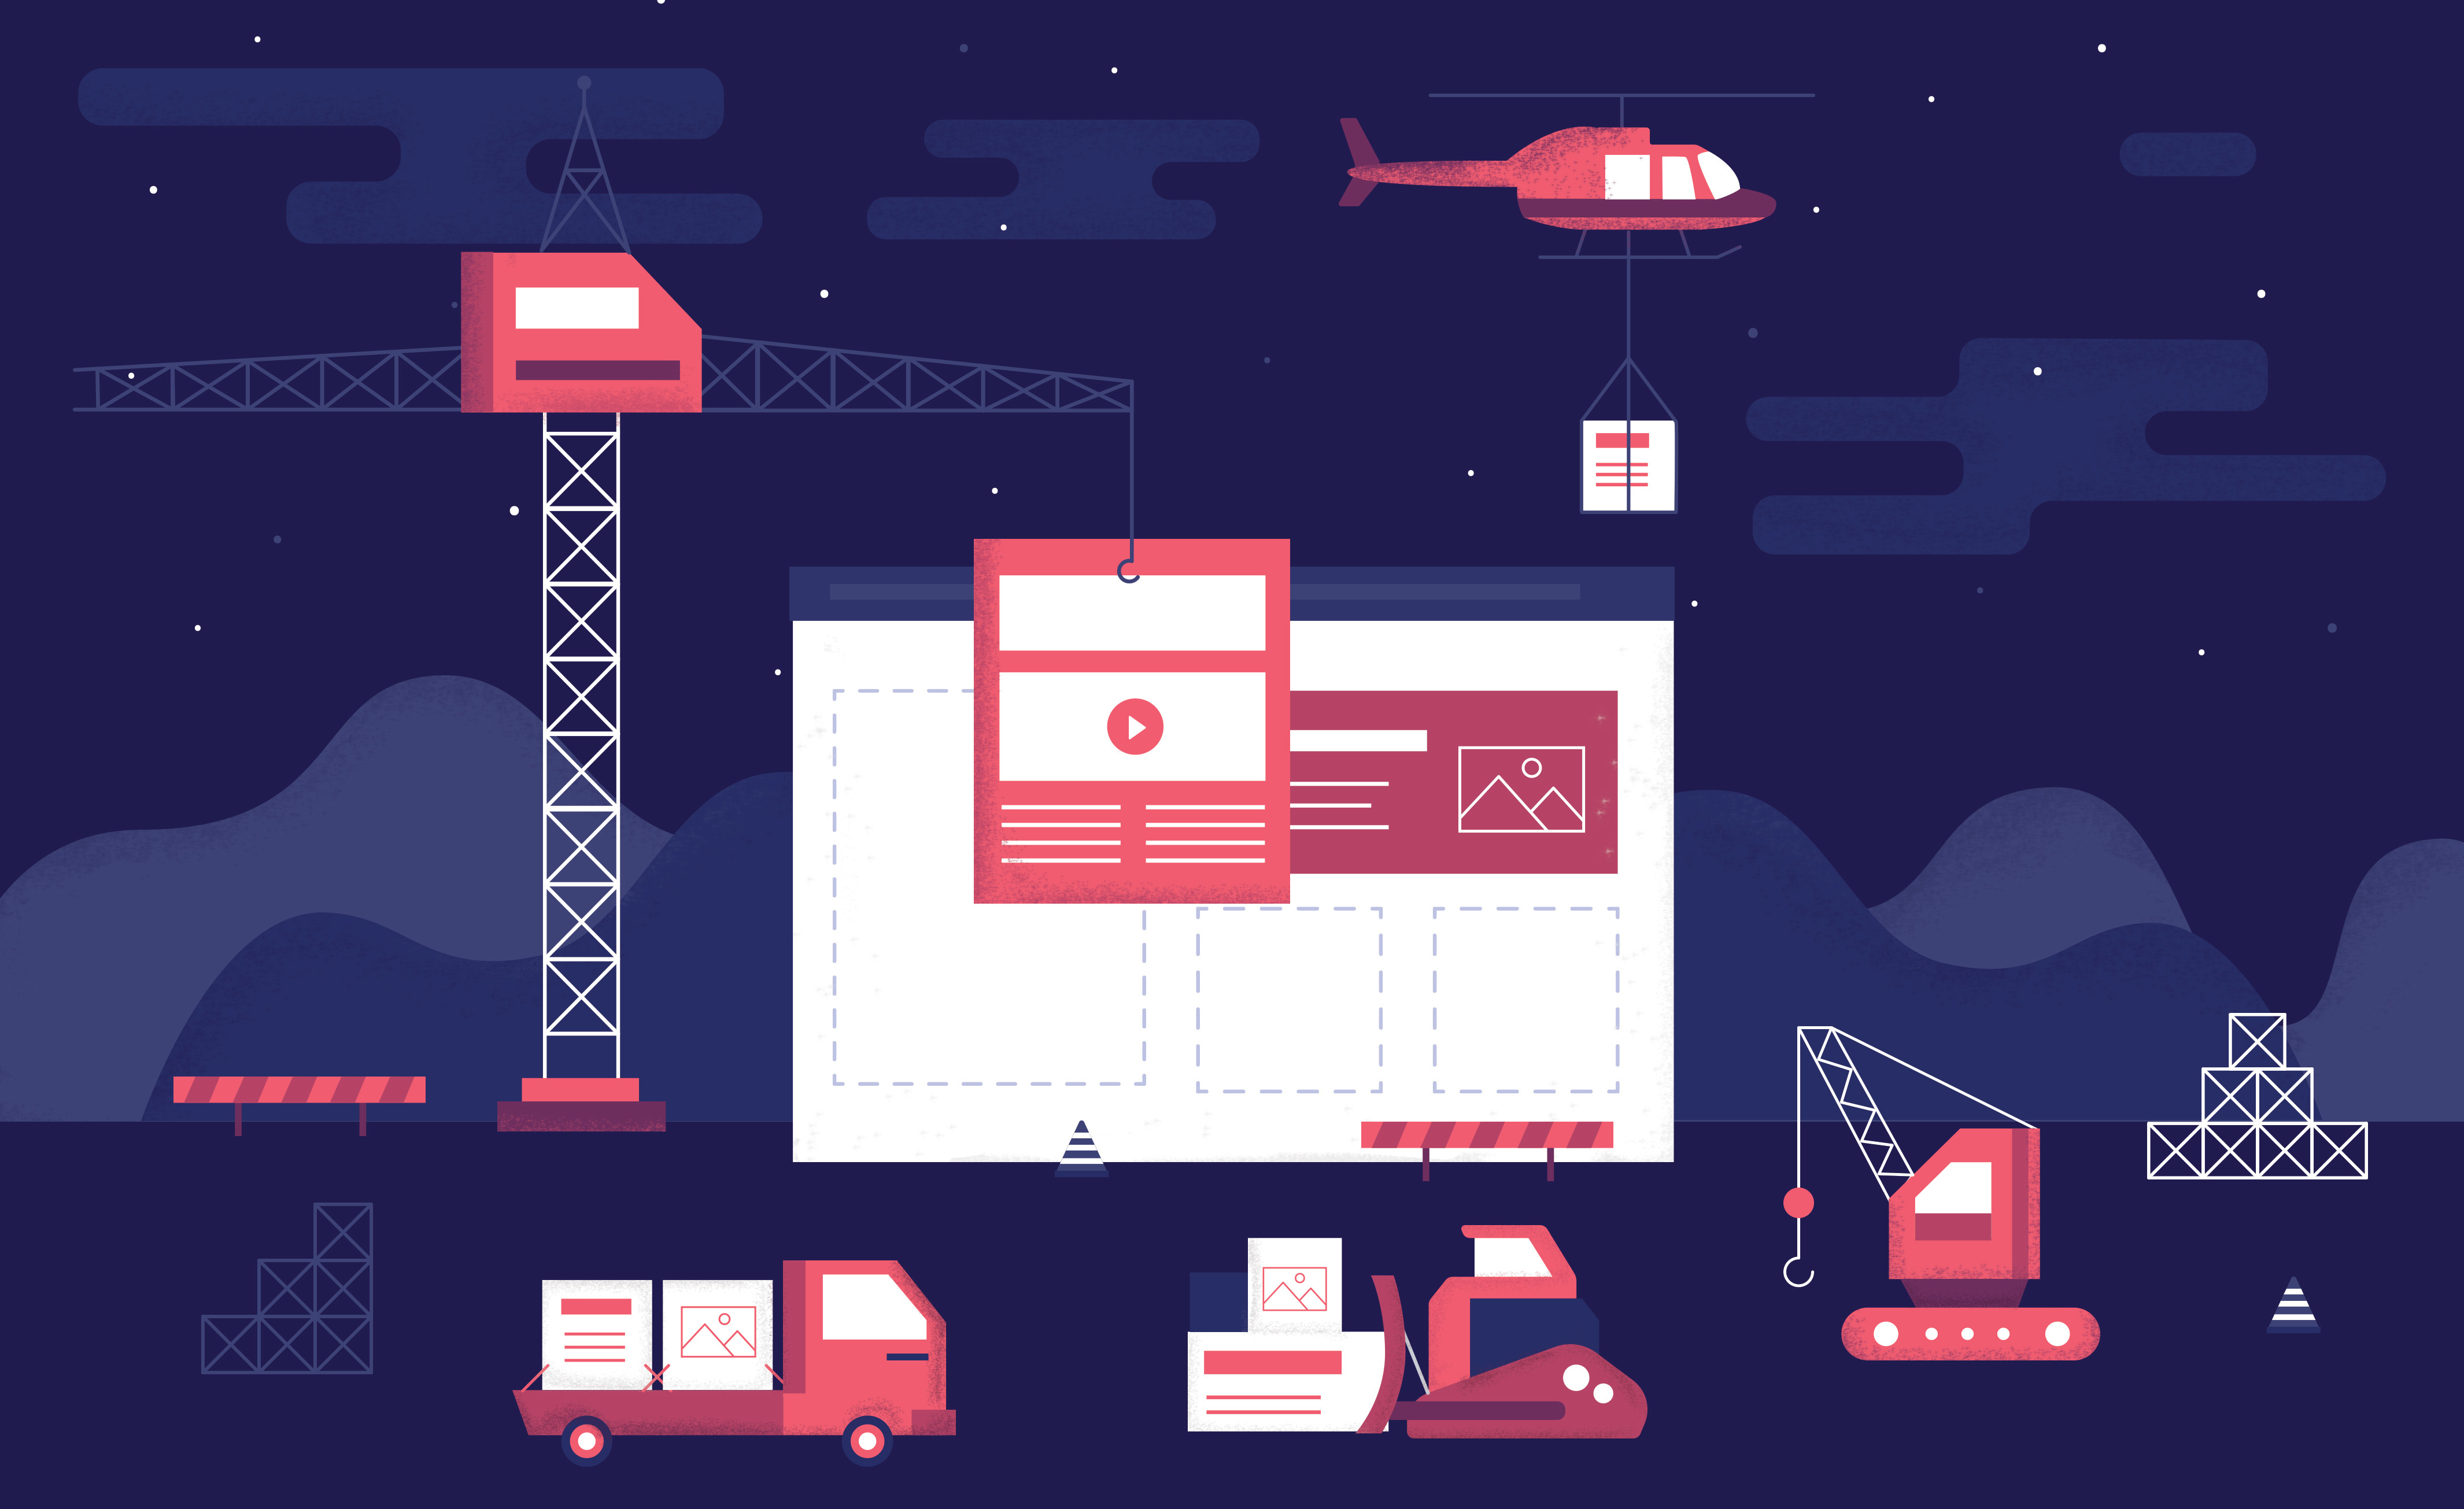 Illustration of construction machines building an ecommerce website